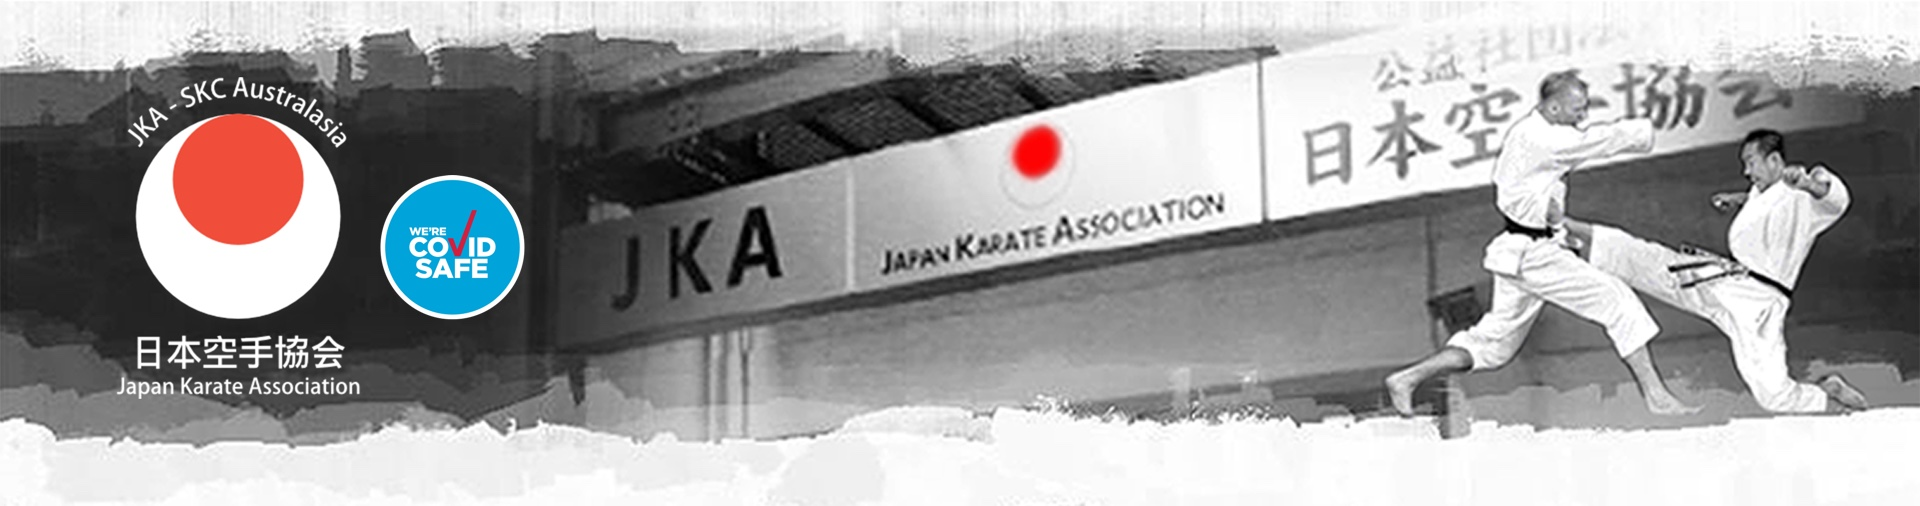 Japan Karate Association Melbourne - logo